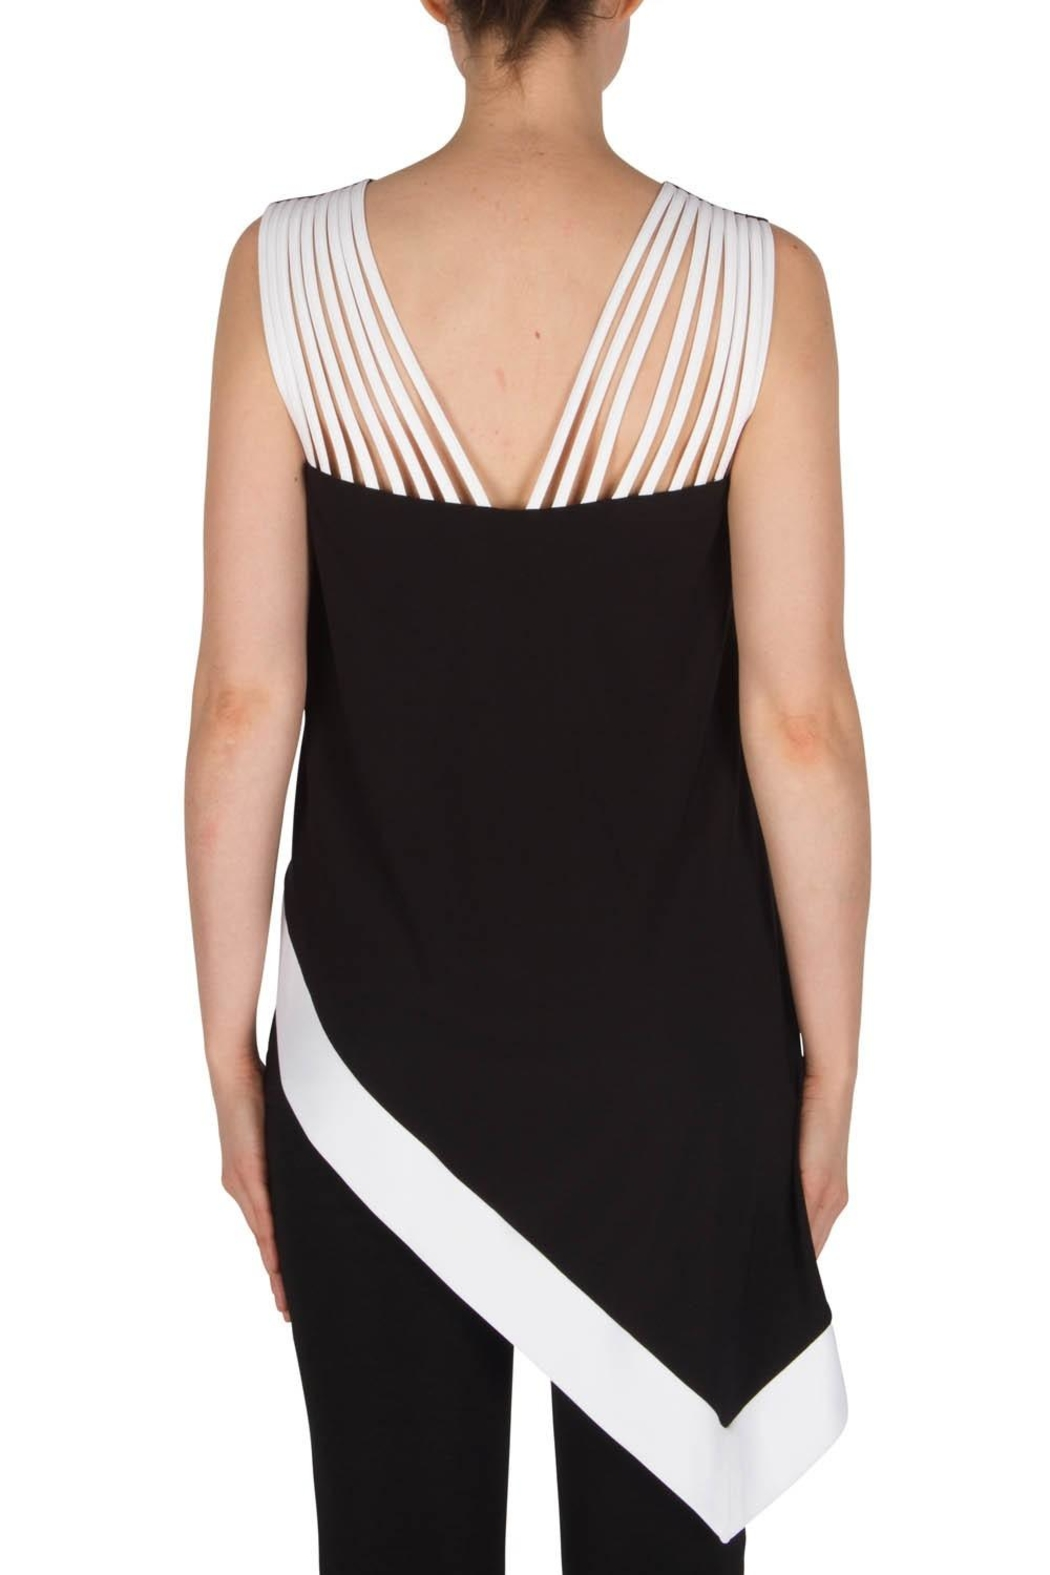 Joseph Ribkoff Asymmetrical  Top - Front Full Image